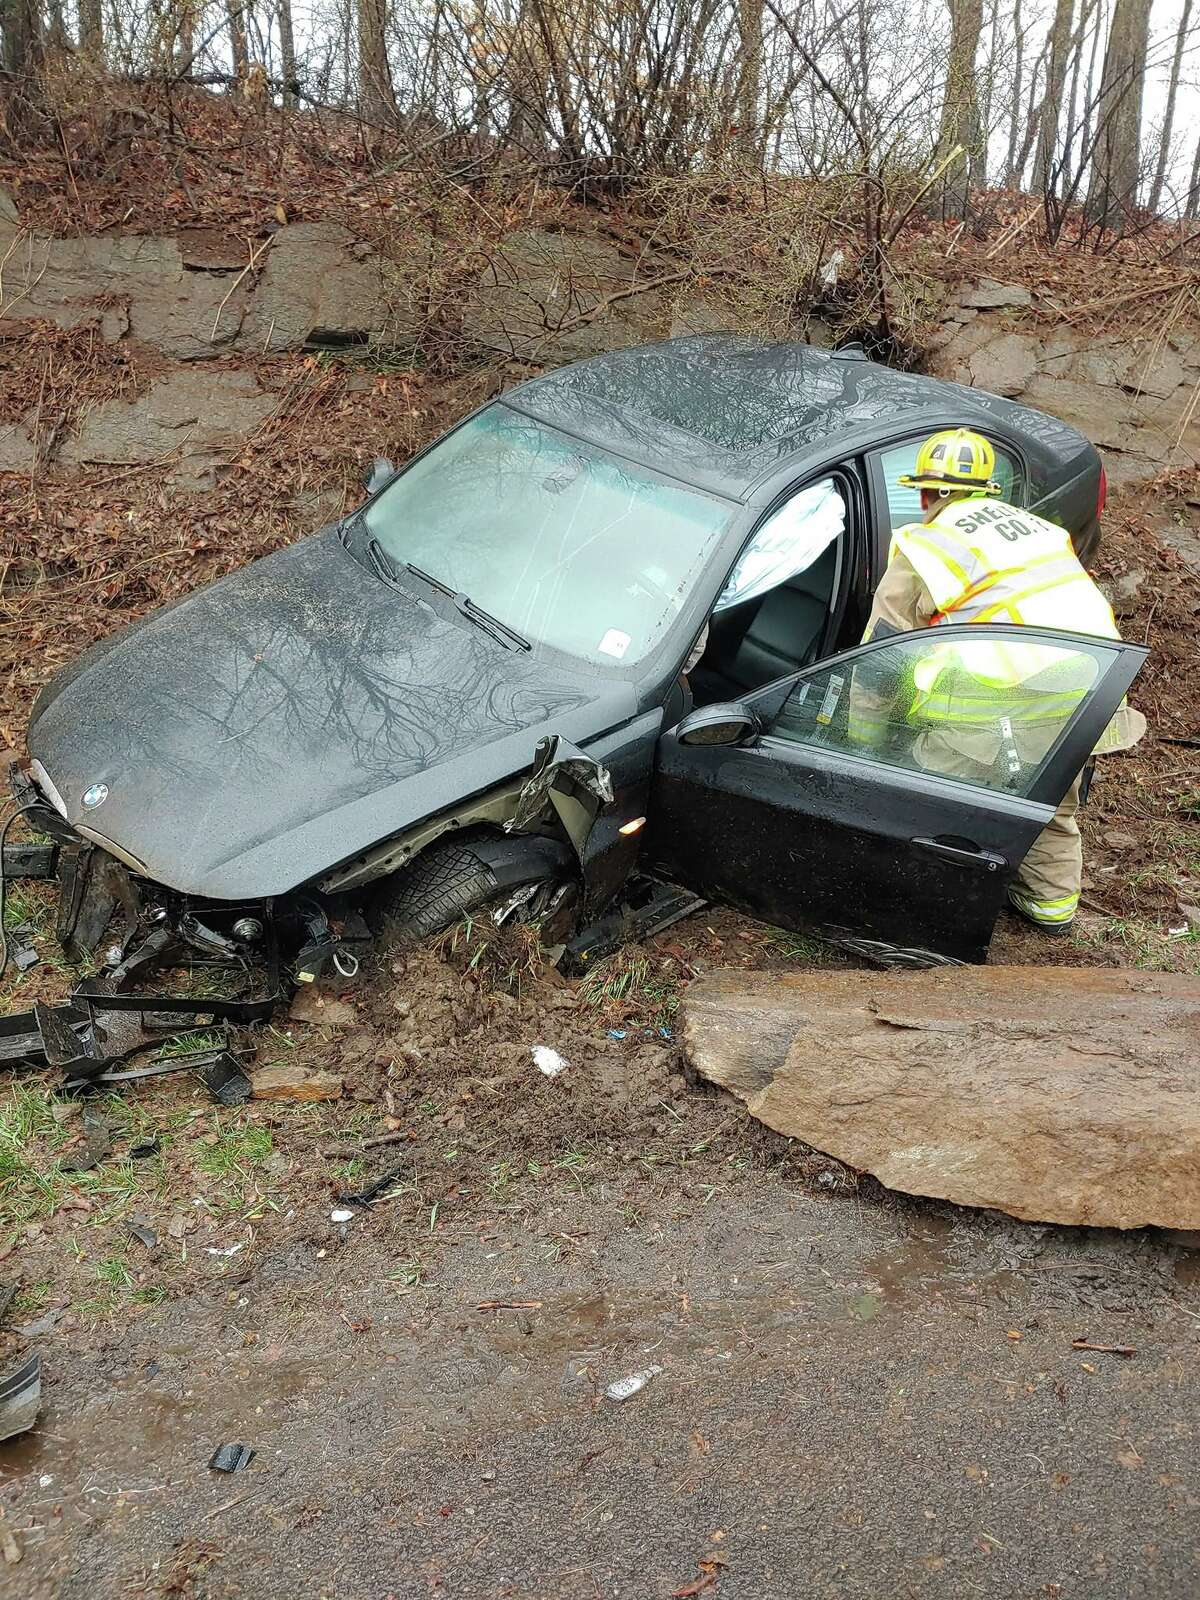 Shelton emergency crews responded to a one-vehicle accident on Route 8 near exit 12 Thursday, March 19, about 8:30 a.m.